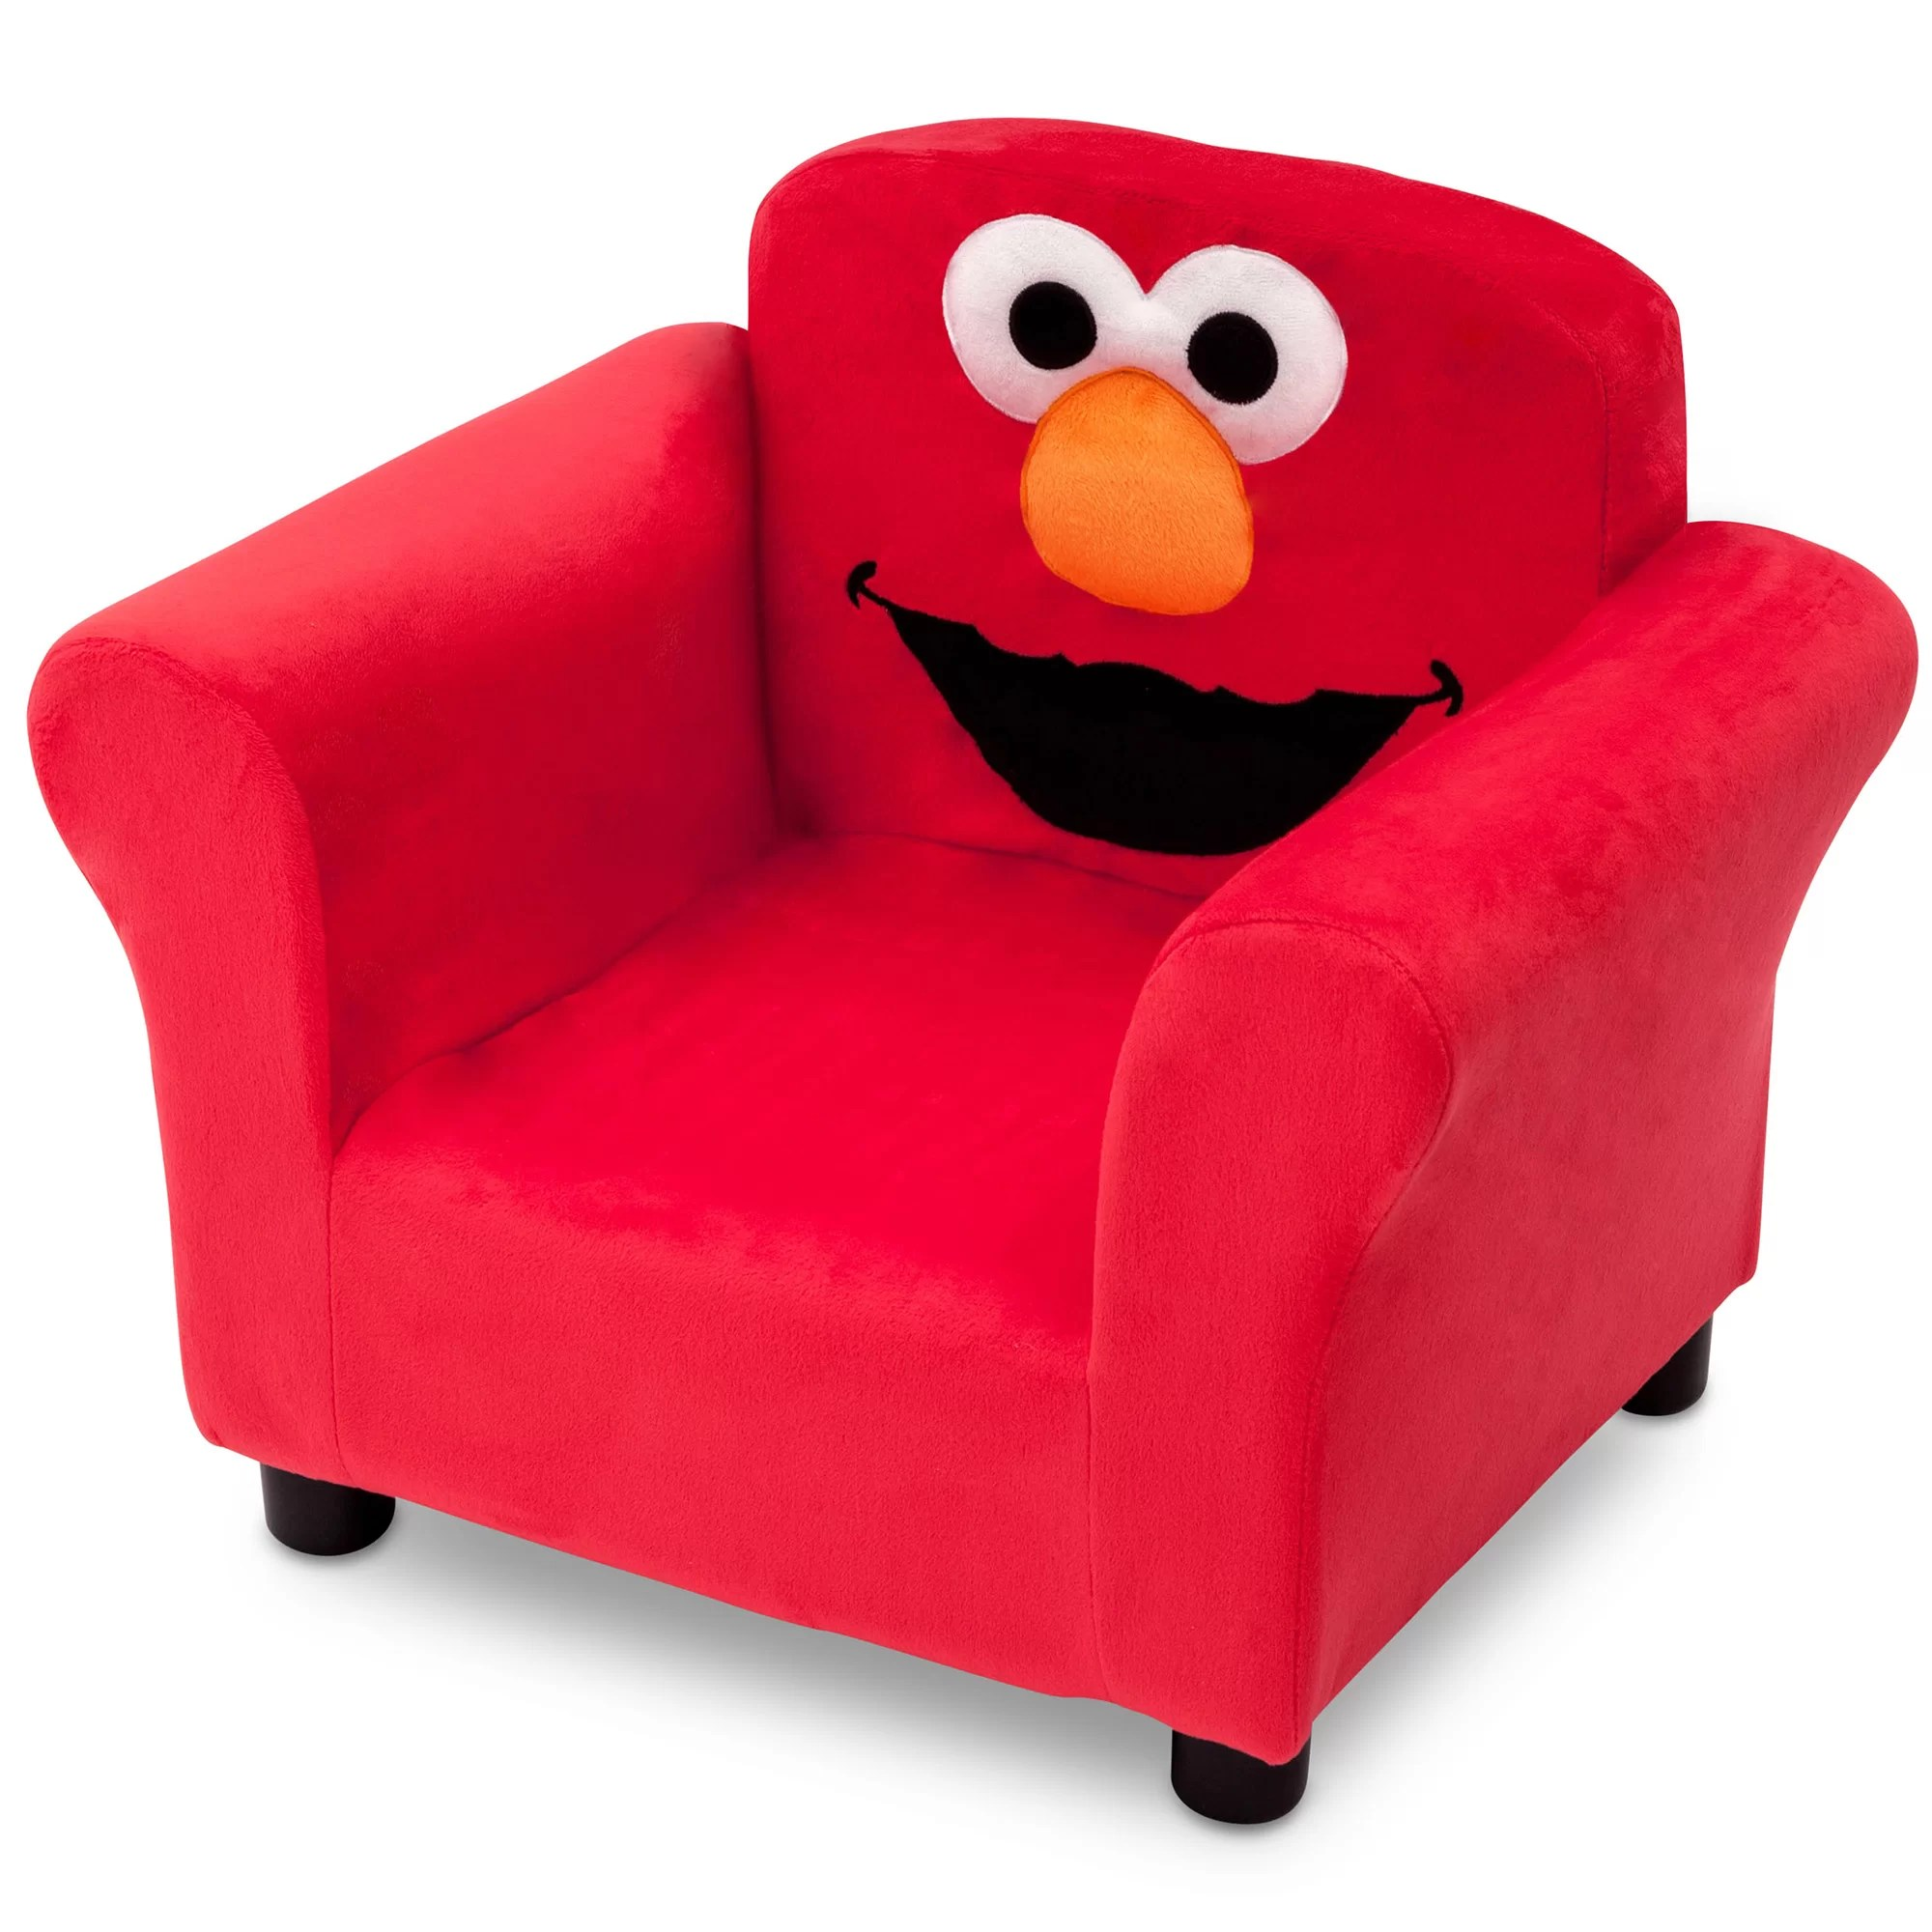 Toddler Chairs Upholstered Sesame Street Elmo Kids Upholstered Club Chair